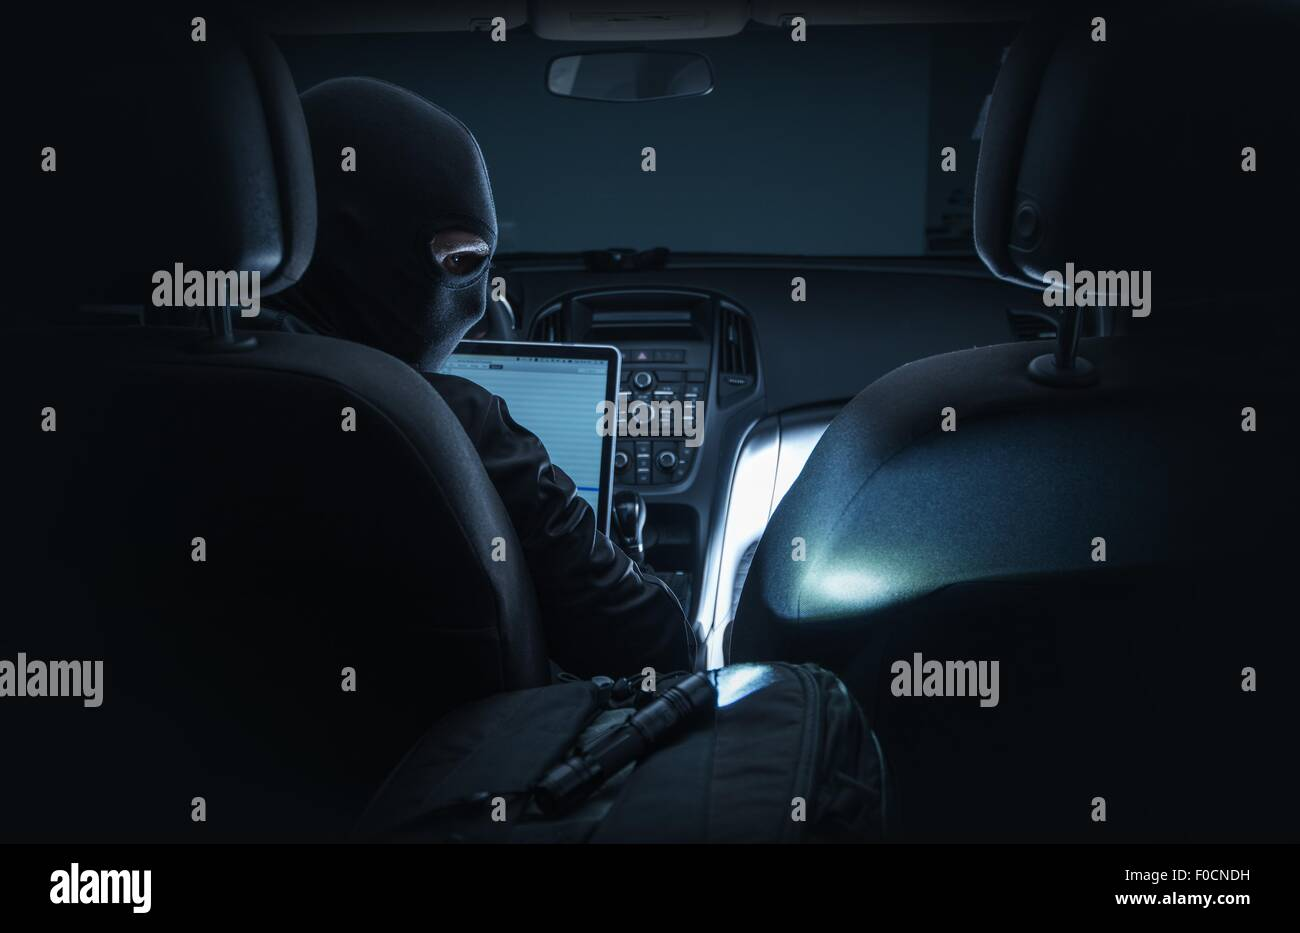 Hacking Car System. Car Hacker in Black Mask Hacking Vehicle Systems From Inside the Car Using Laptop Computer. - Stock Image